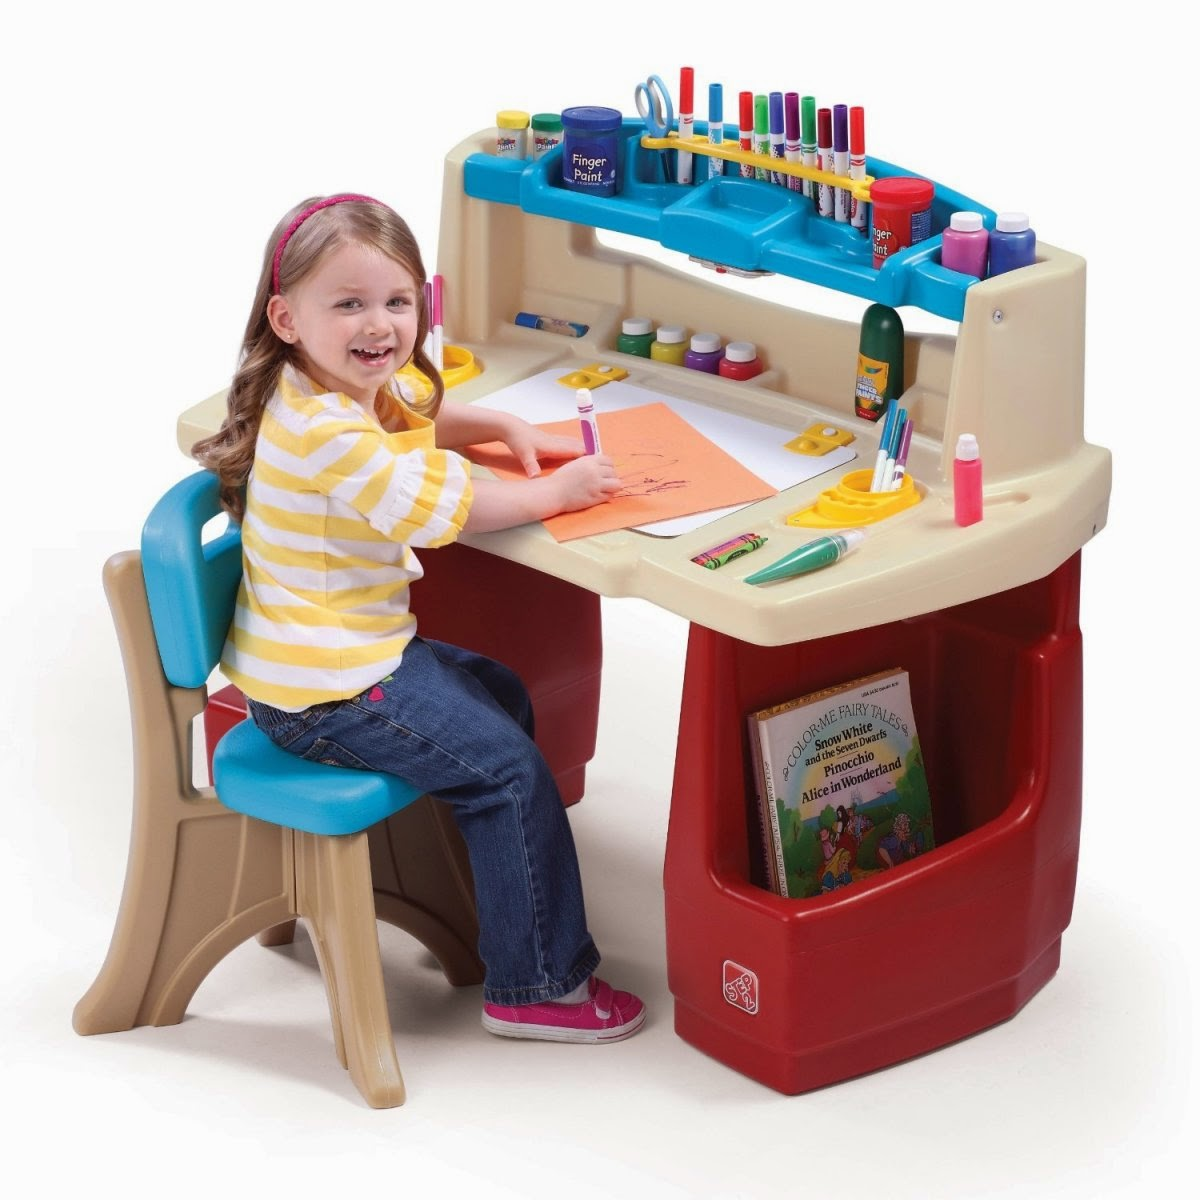 Art Desk Kids Preschool Play